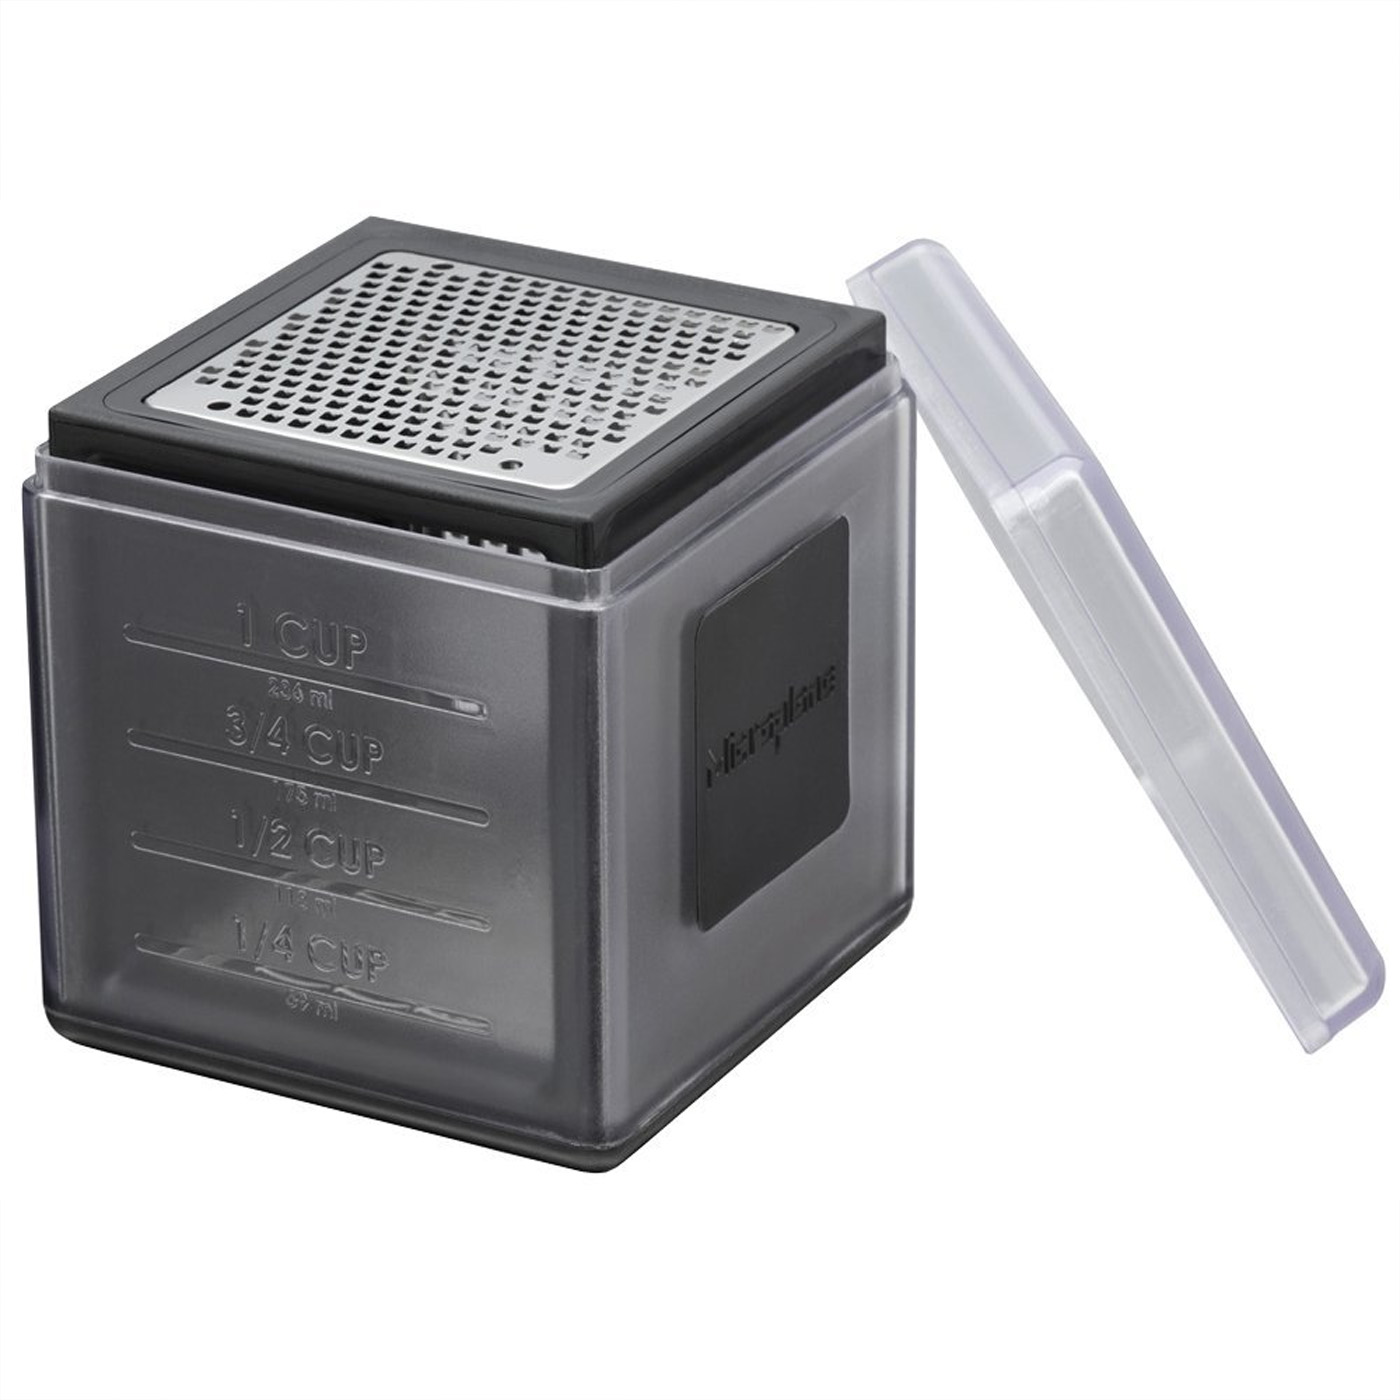 Microplane 3-in-1 Cube Grater, Black